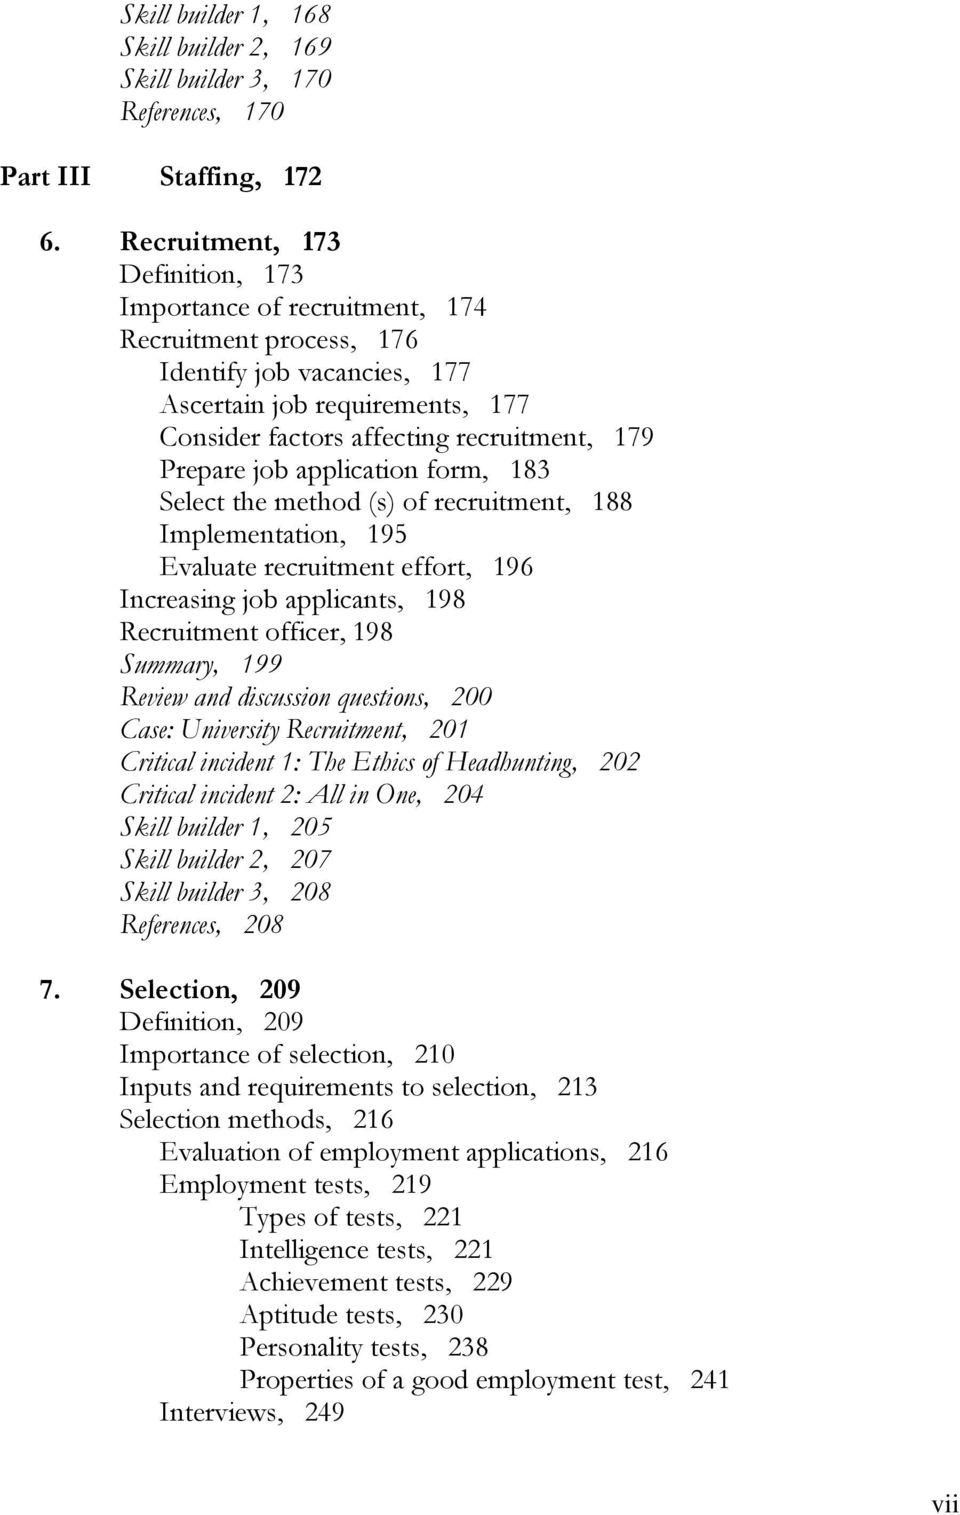 Prepare job application form, 183 Select the method (s) of recruitment, 188 Implementation, 195 Evaluate recruitment effort, 196 Increasing job applicants, 198 Recruitment officer, 198 Summary, 199